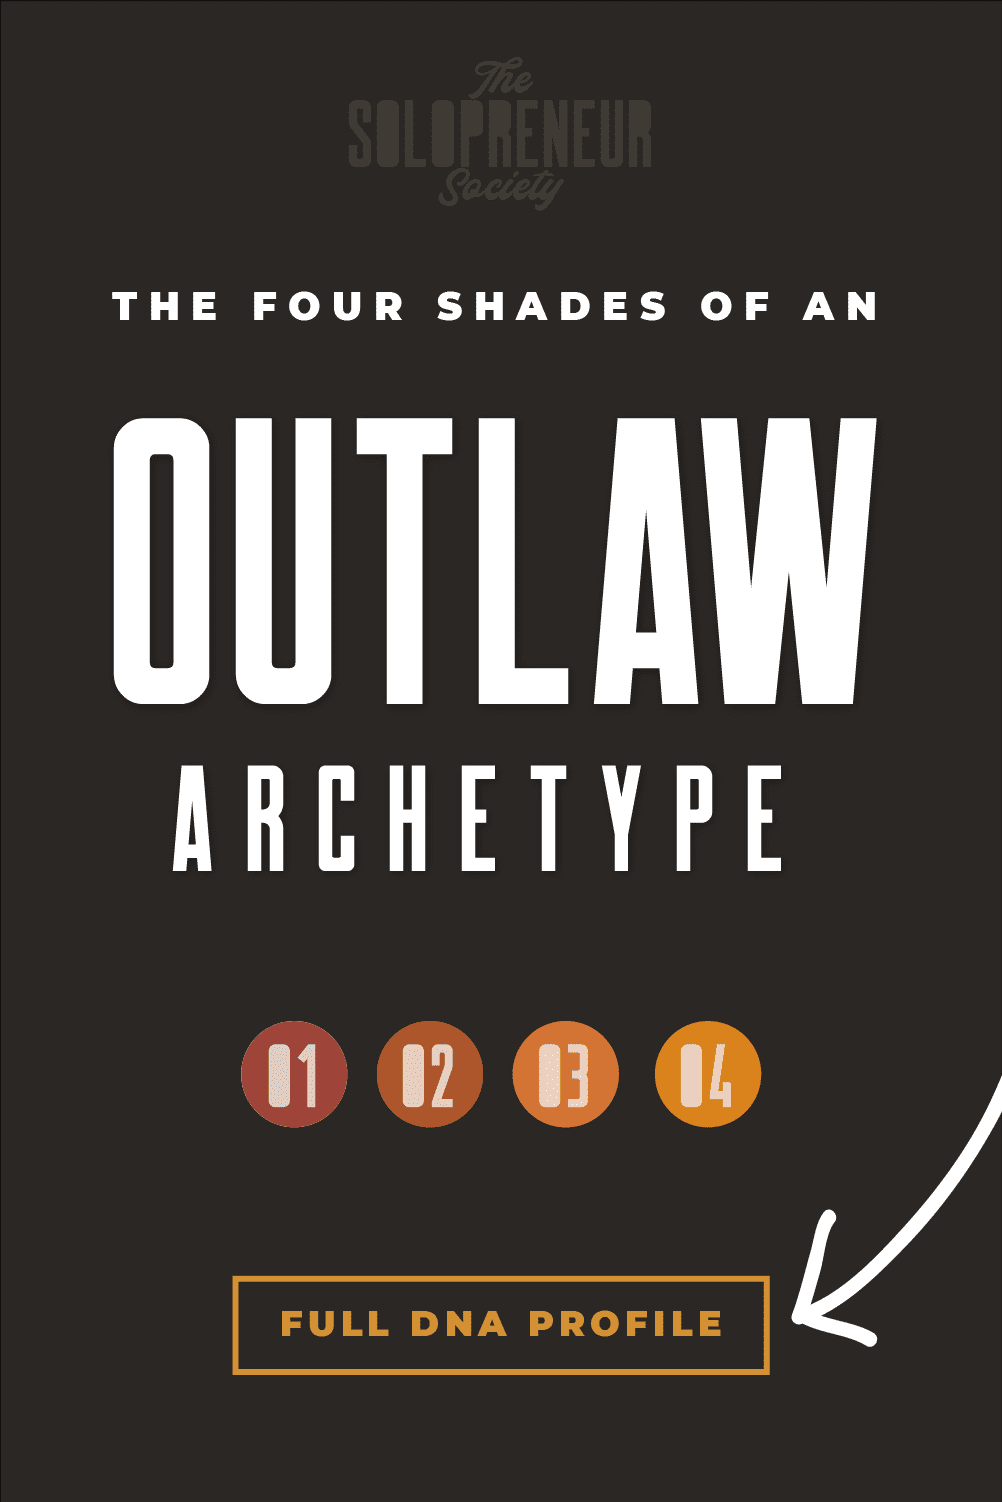 Outlaw Archetype Brand Personality